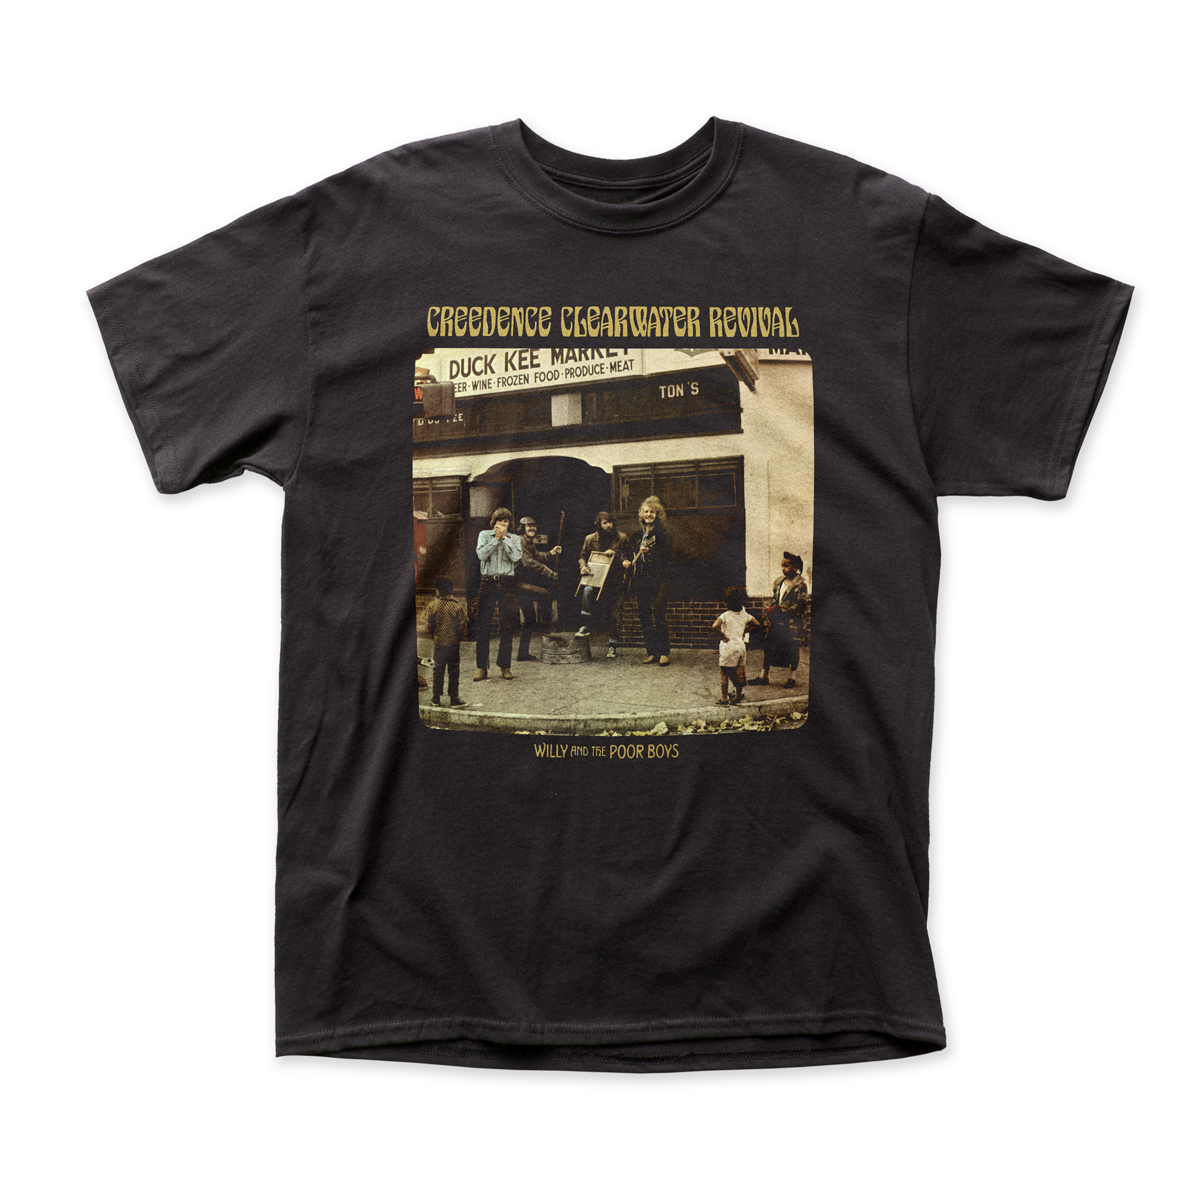 Creedence Clearwater Revival - Poor Boys T-Shirt